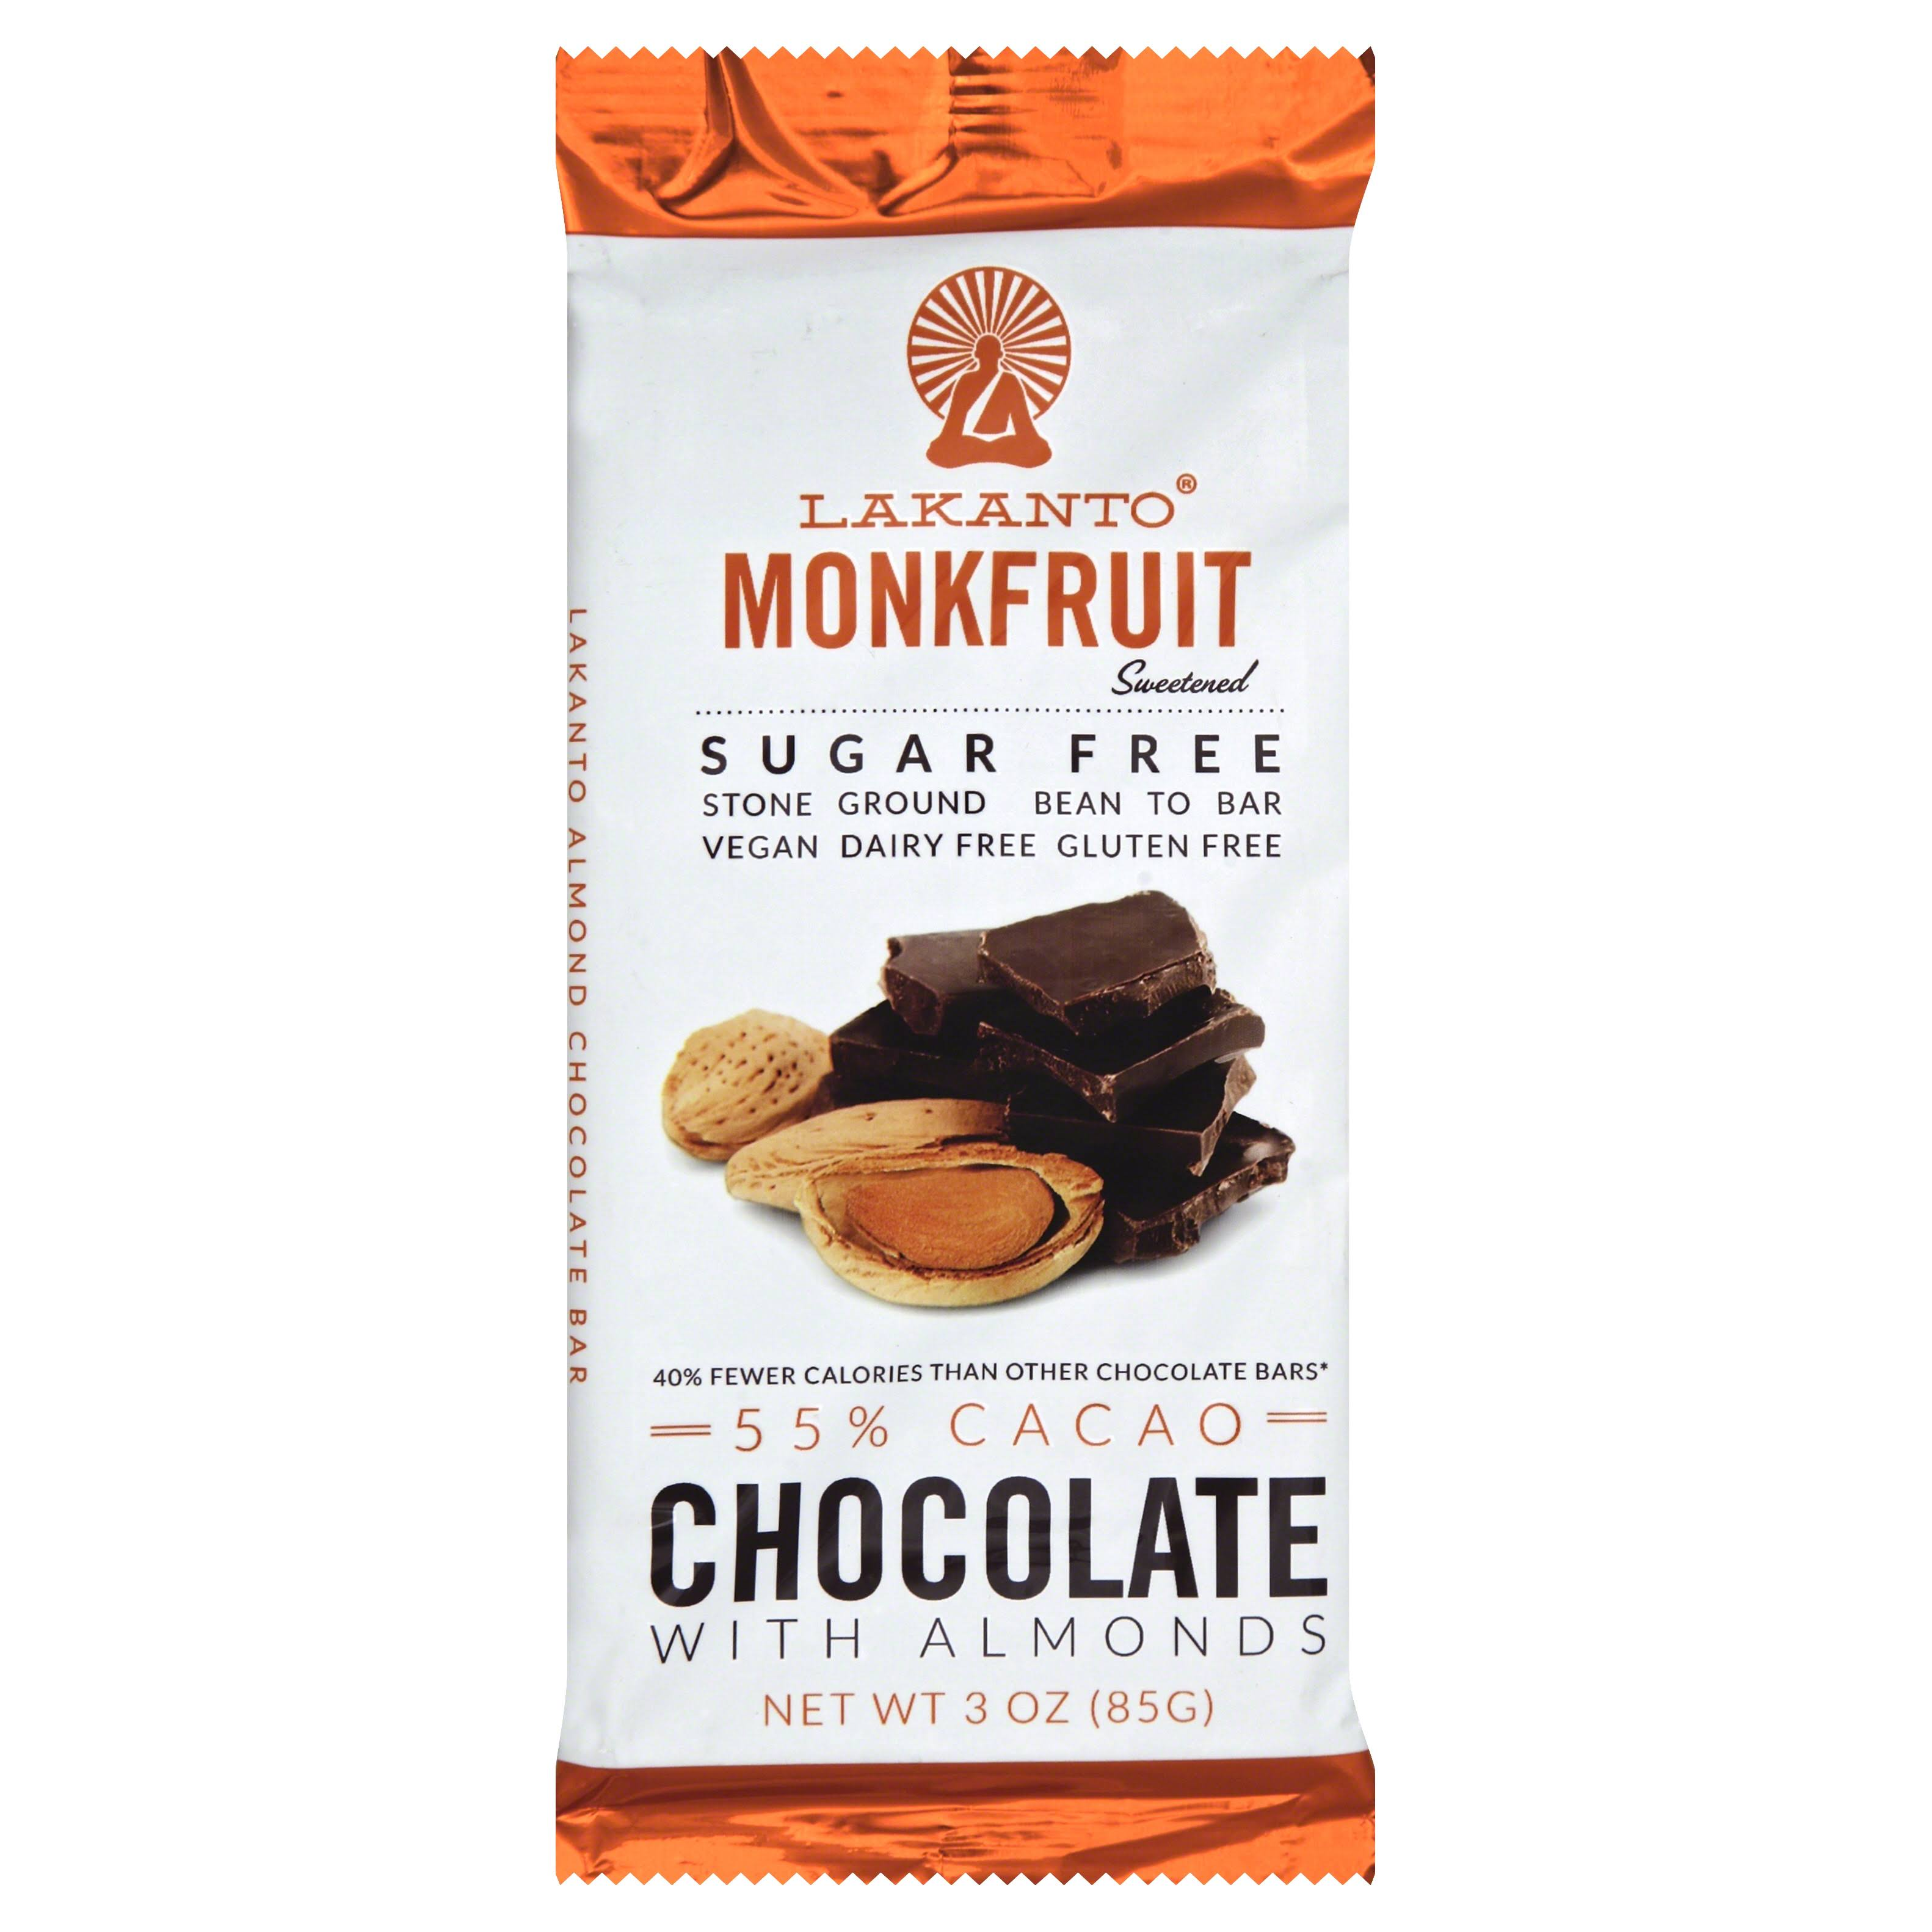 Lakanto Monkfruit Sugar Free Chocolate Bar With Almonds - 55% Cacao